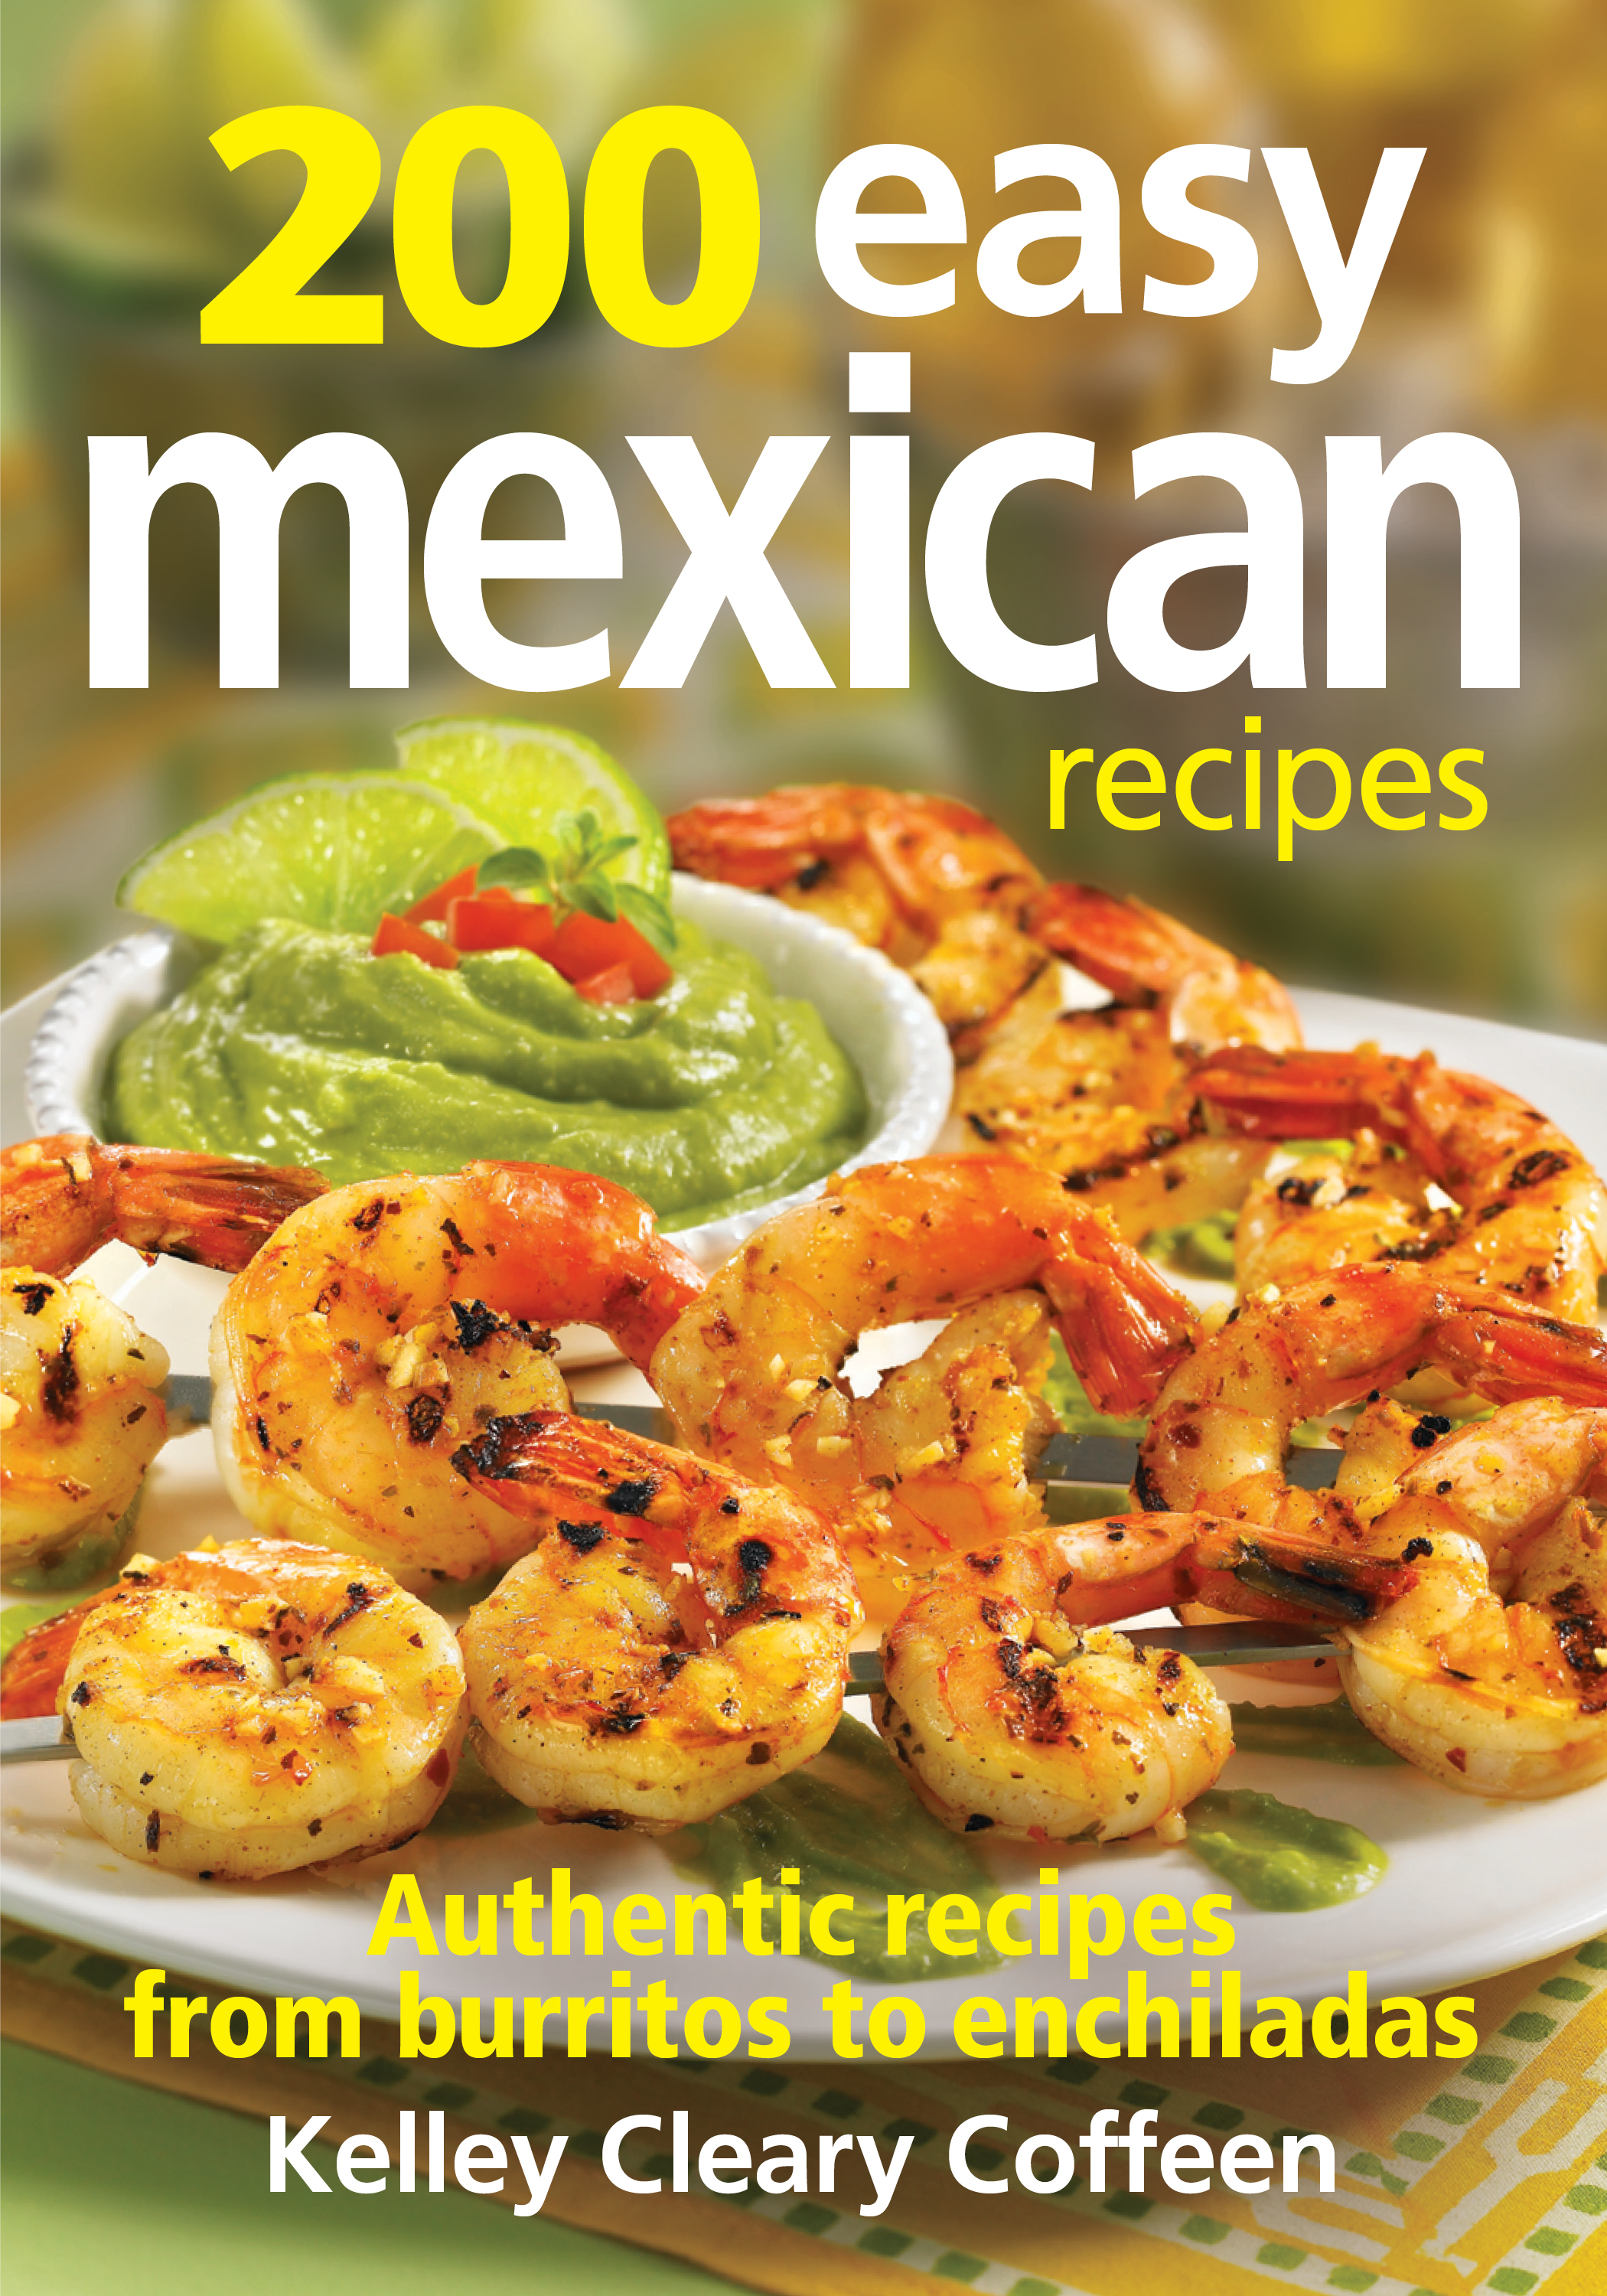 200 Easy Mexican Recipes Cookbook By Kelley Cleary Coffeen